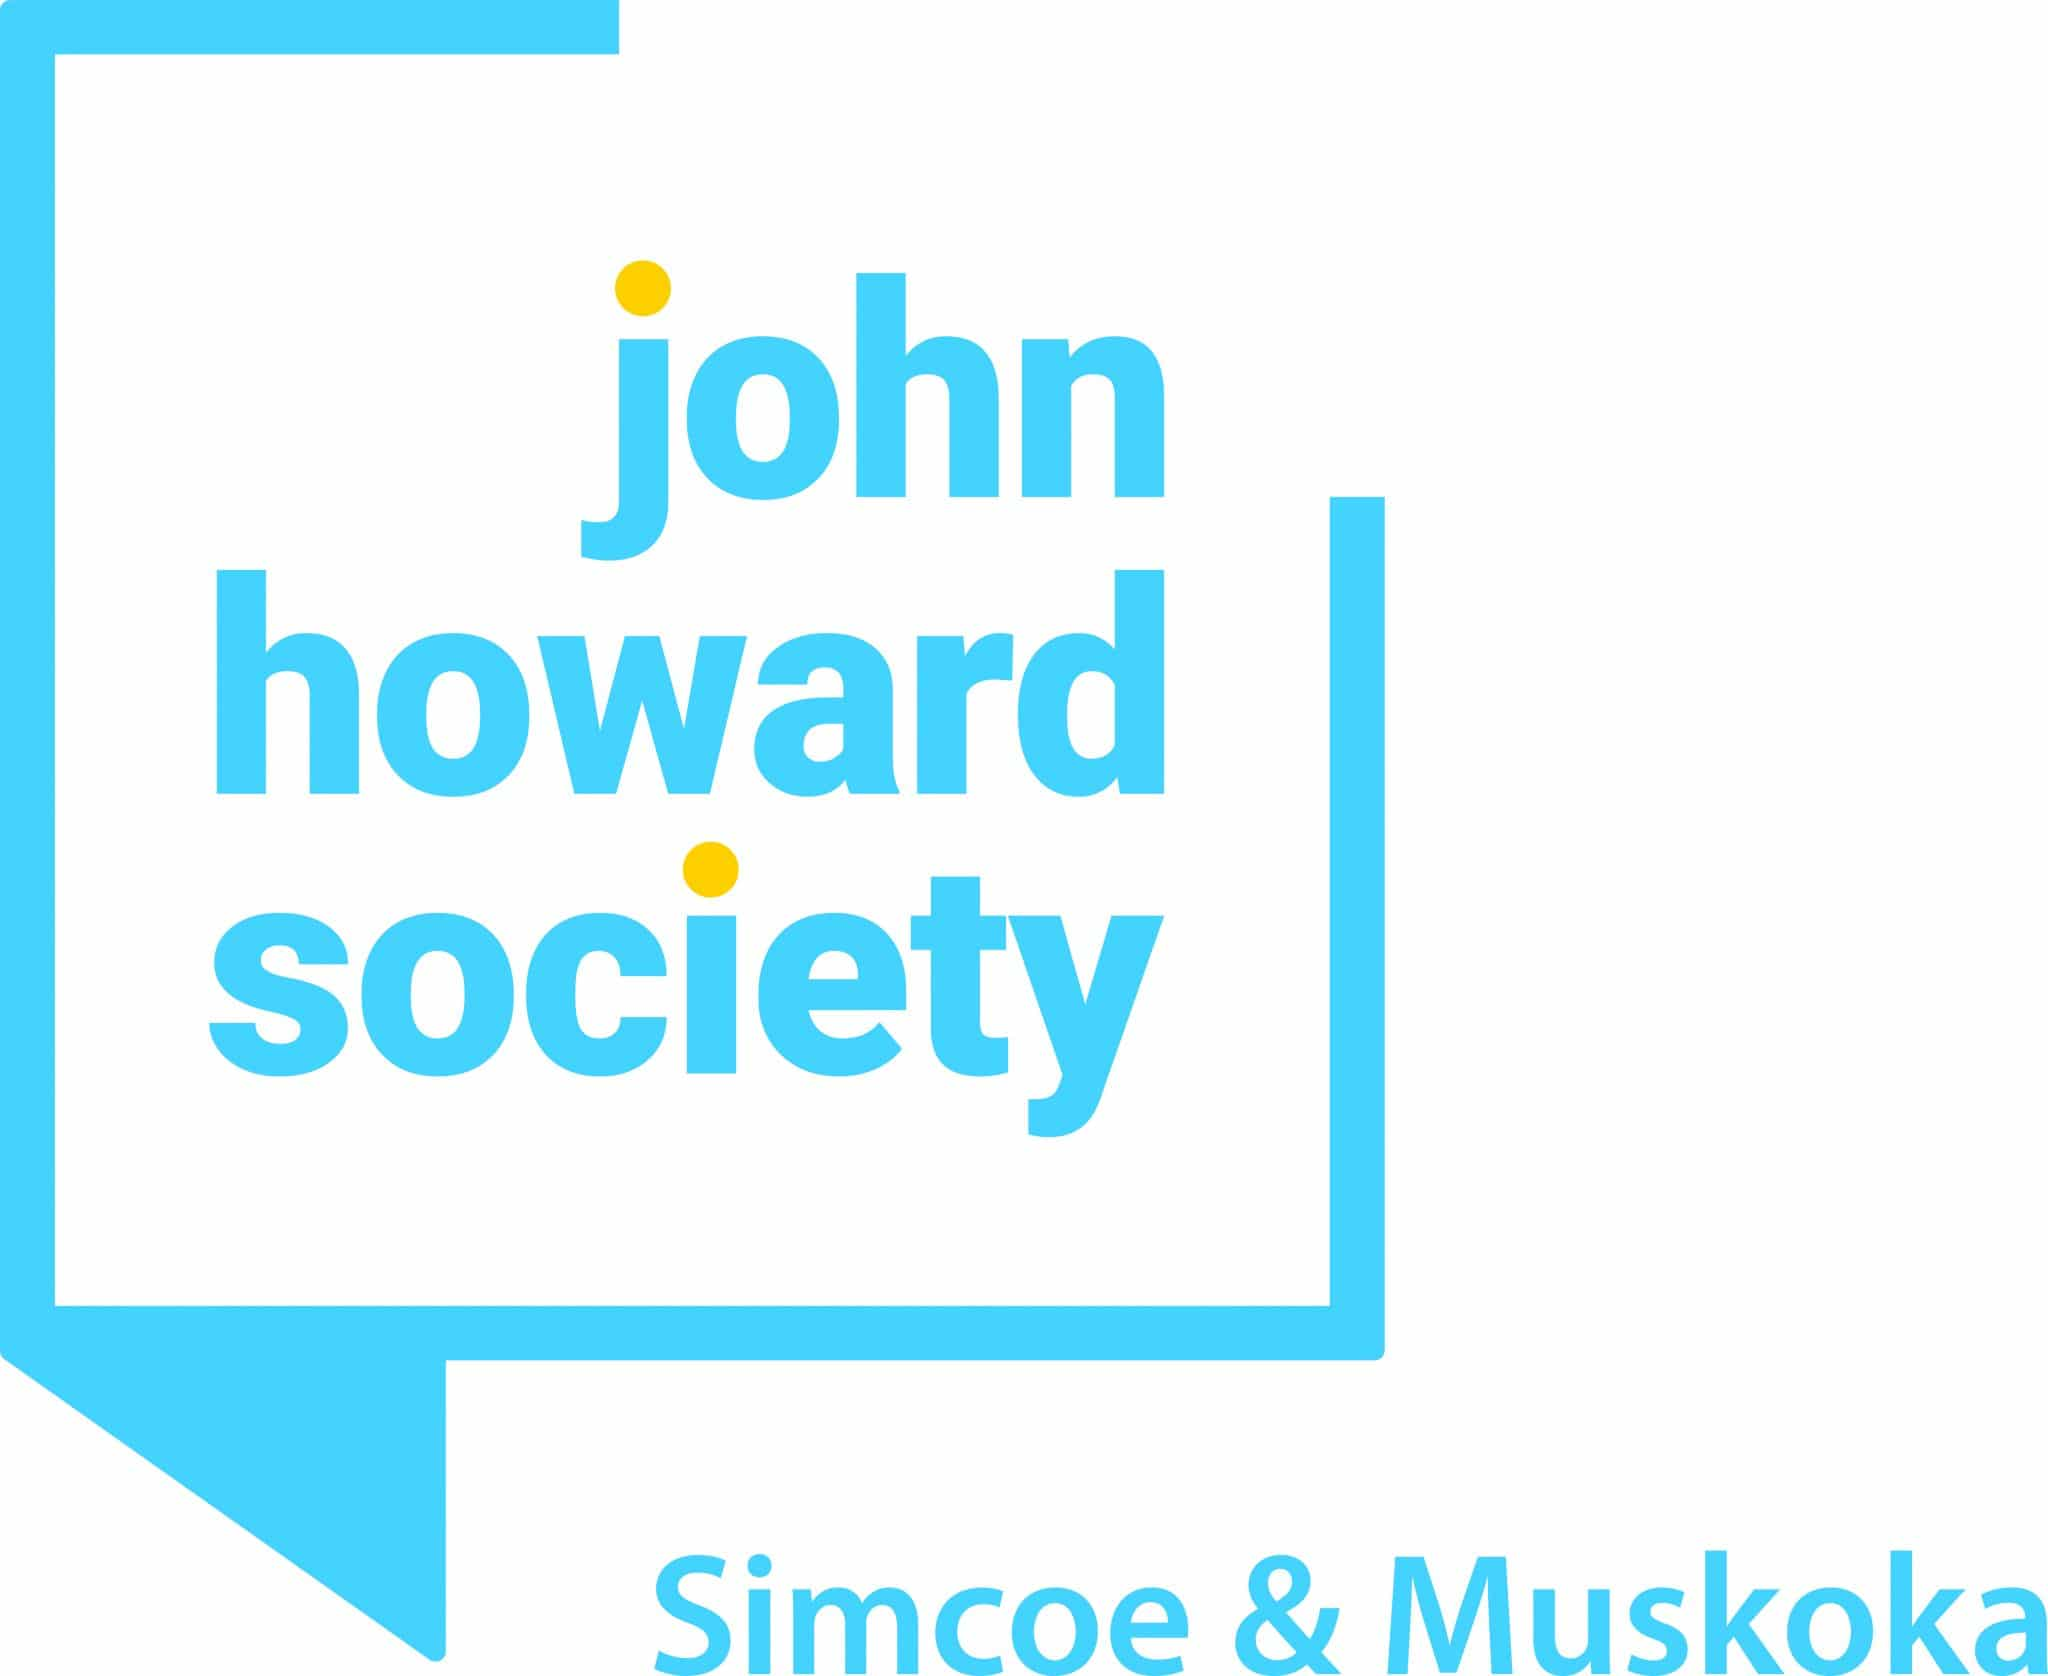 John Howard Society logo